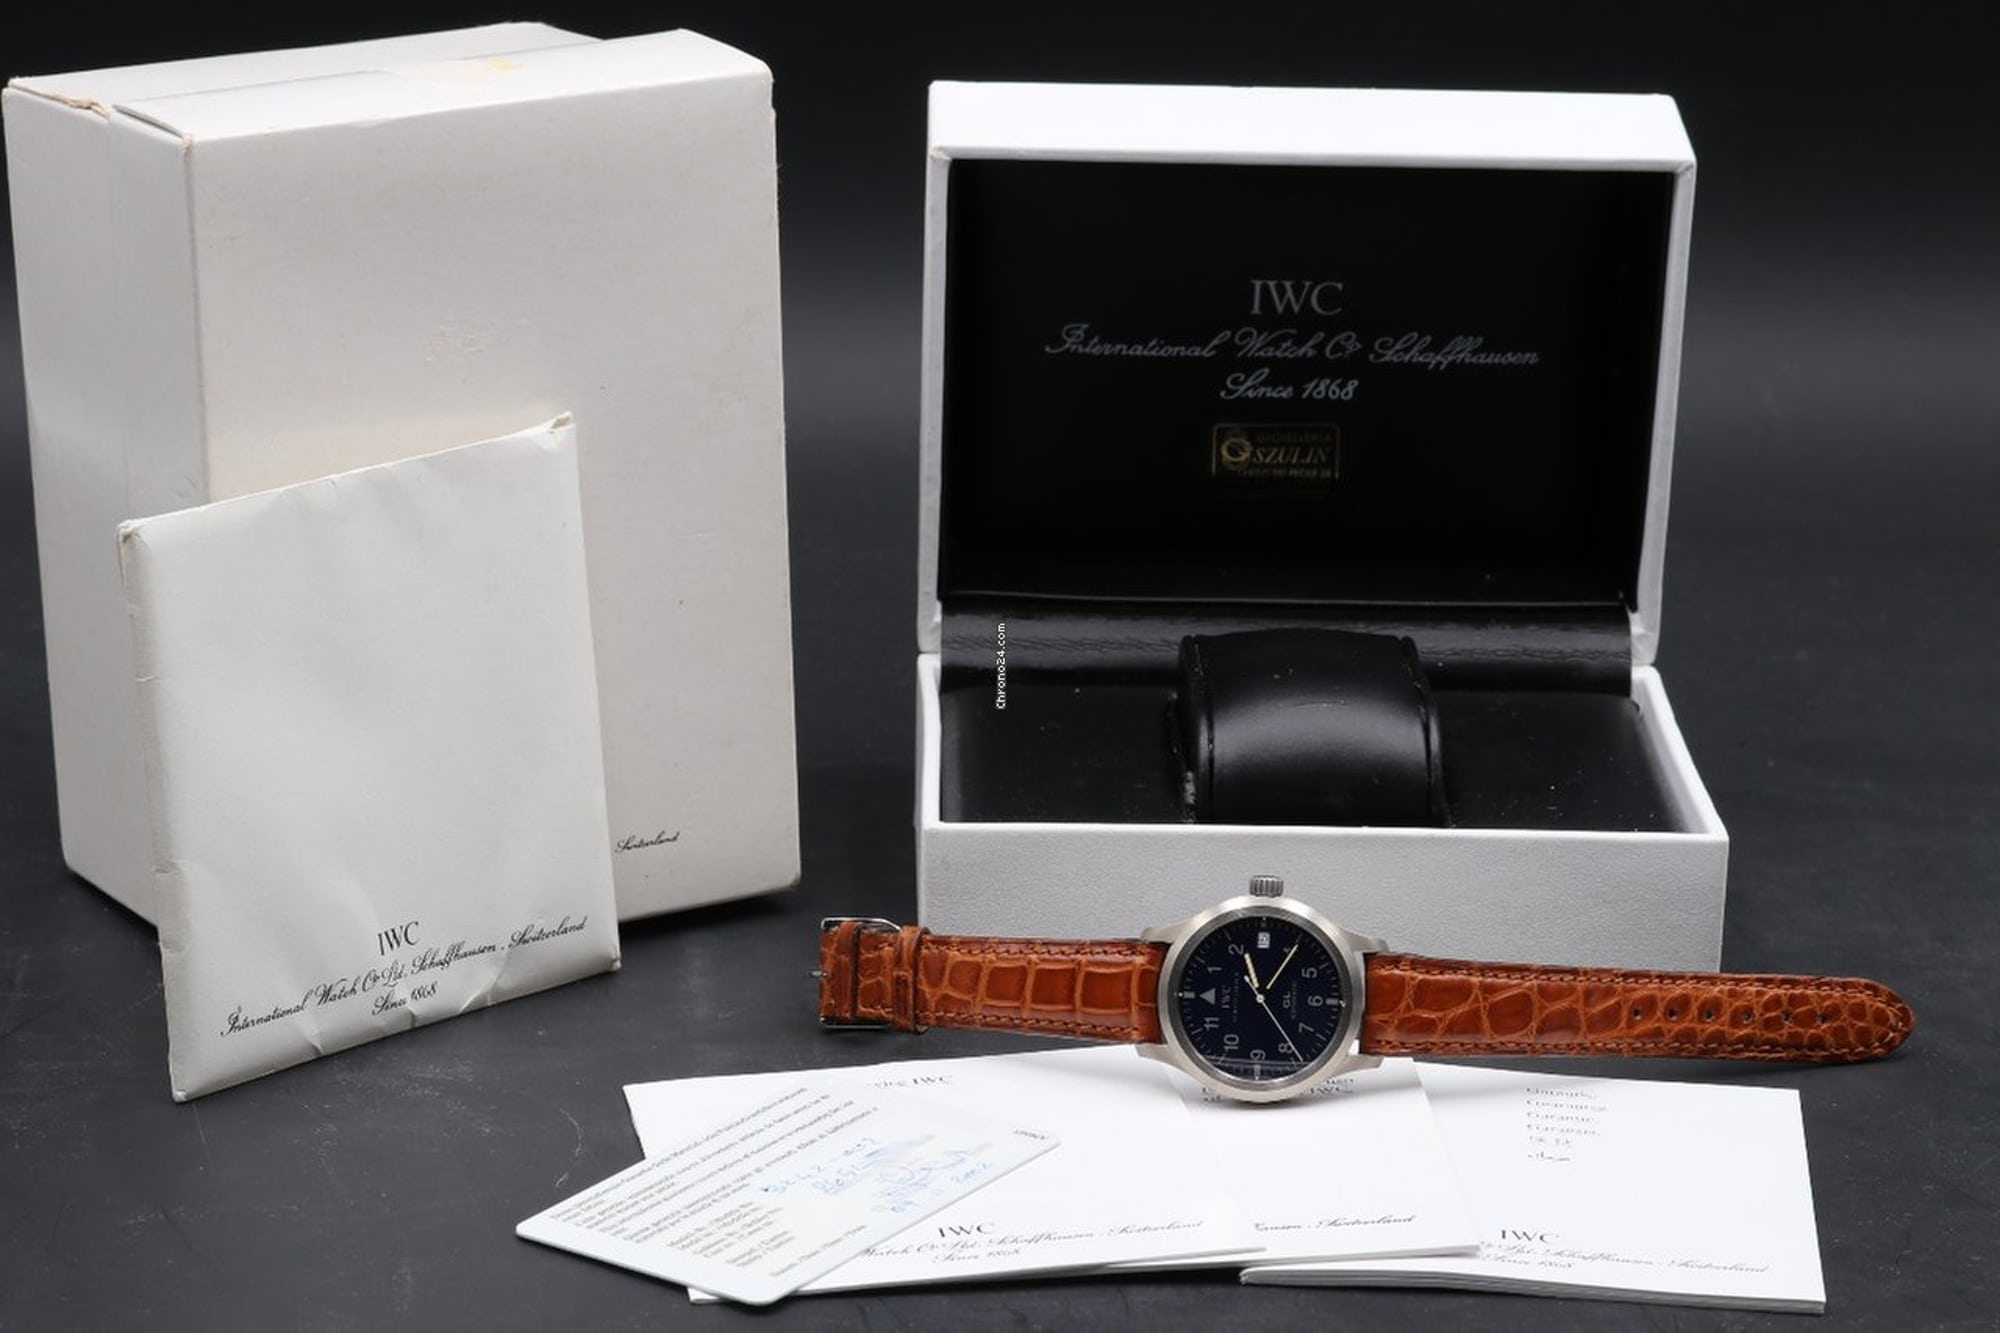 IWC Mark XII Reference 3242 full set Bring a Loupe: A Titanium Zenith Port Royal, A Military Universal Genve Compax, A Pulsations Doxa Sfygmos, And More Bring a Loupe: A Titanium Zenith Port Royal, A Military Universal Genve Compax, A Pulsations Doxa Sfygmos, And More IWC full set